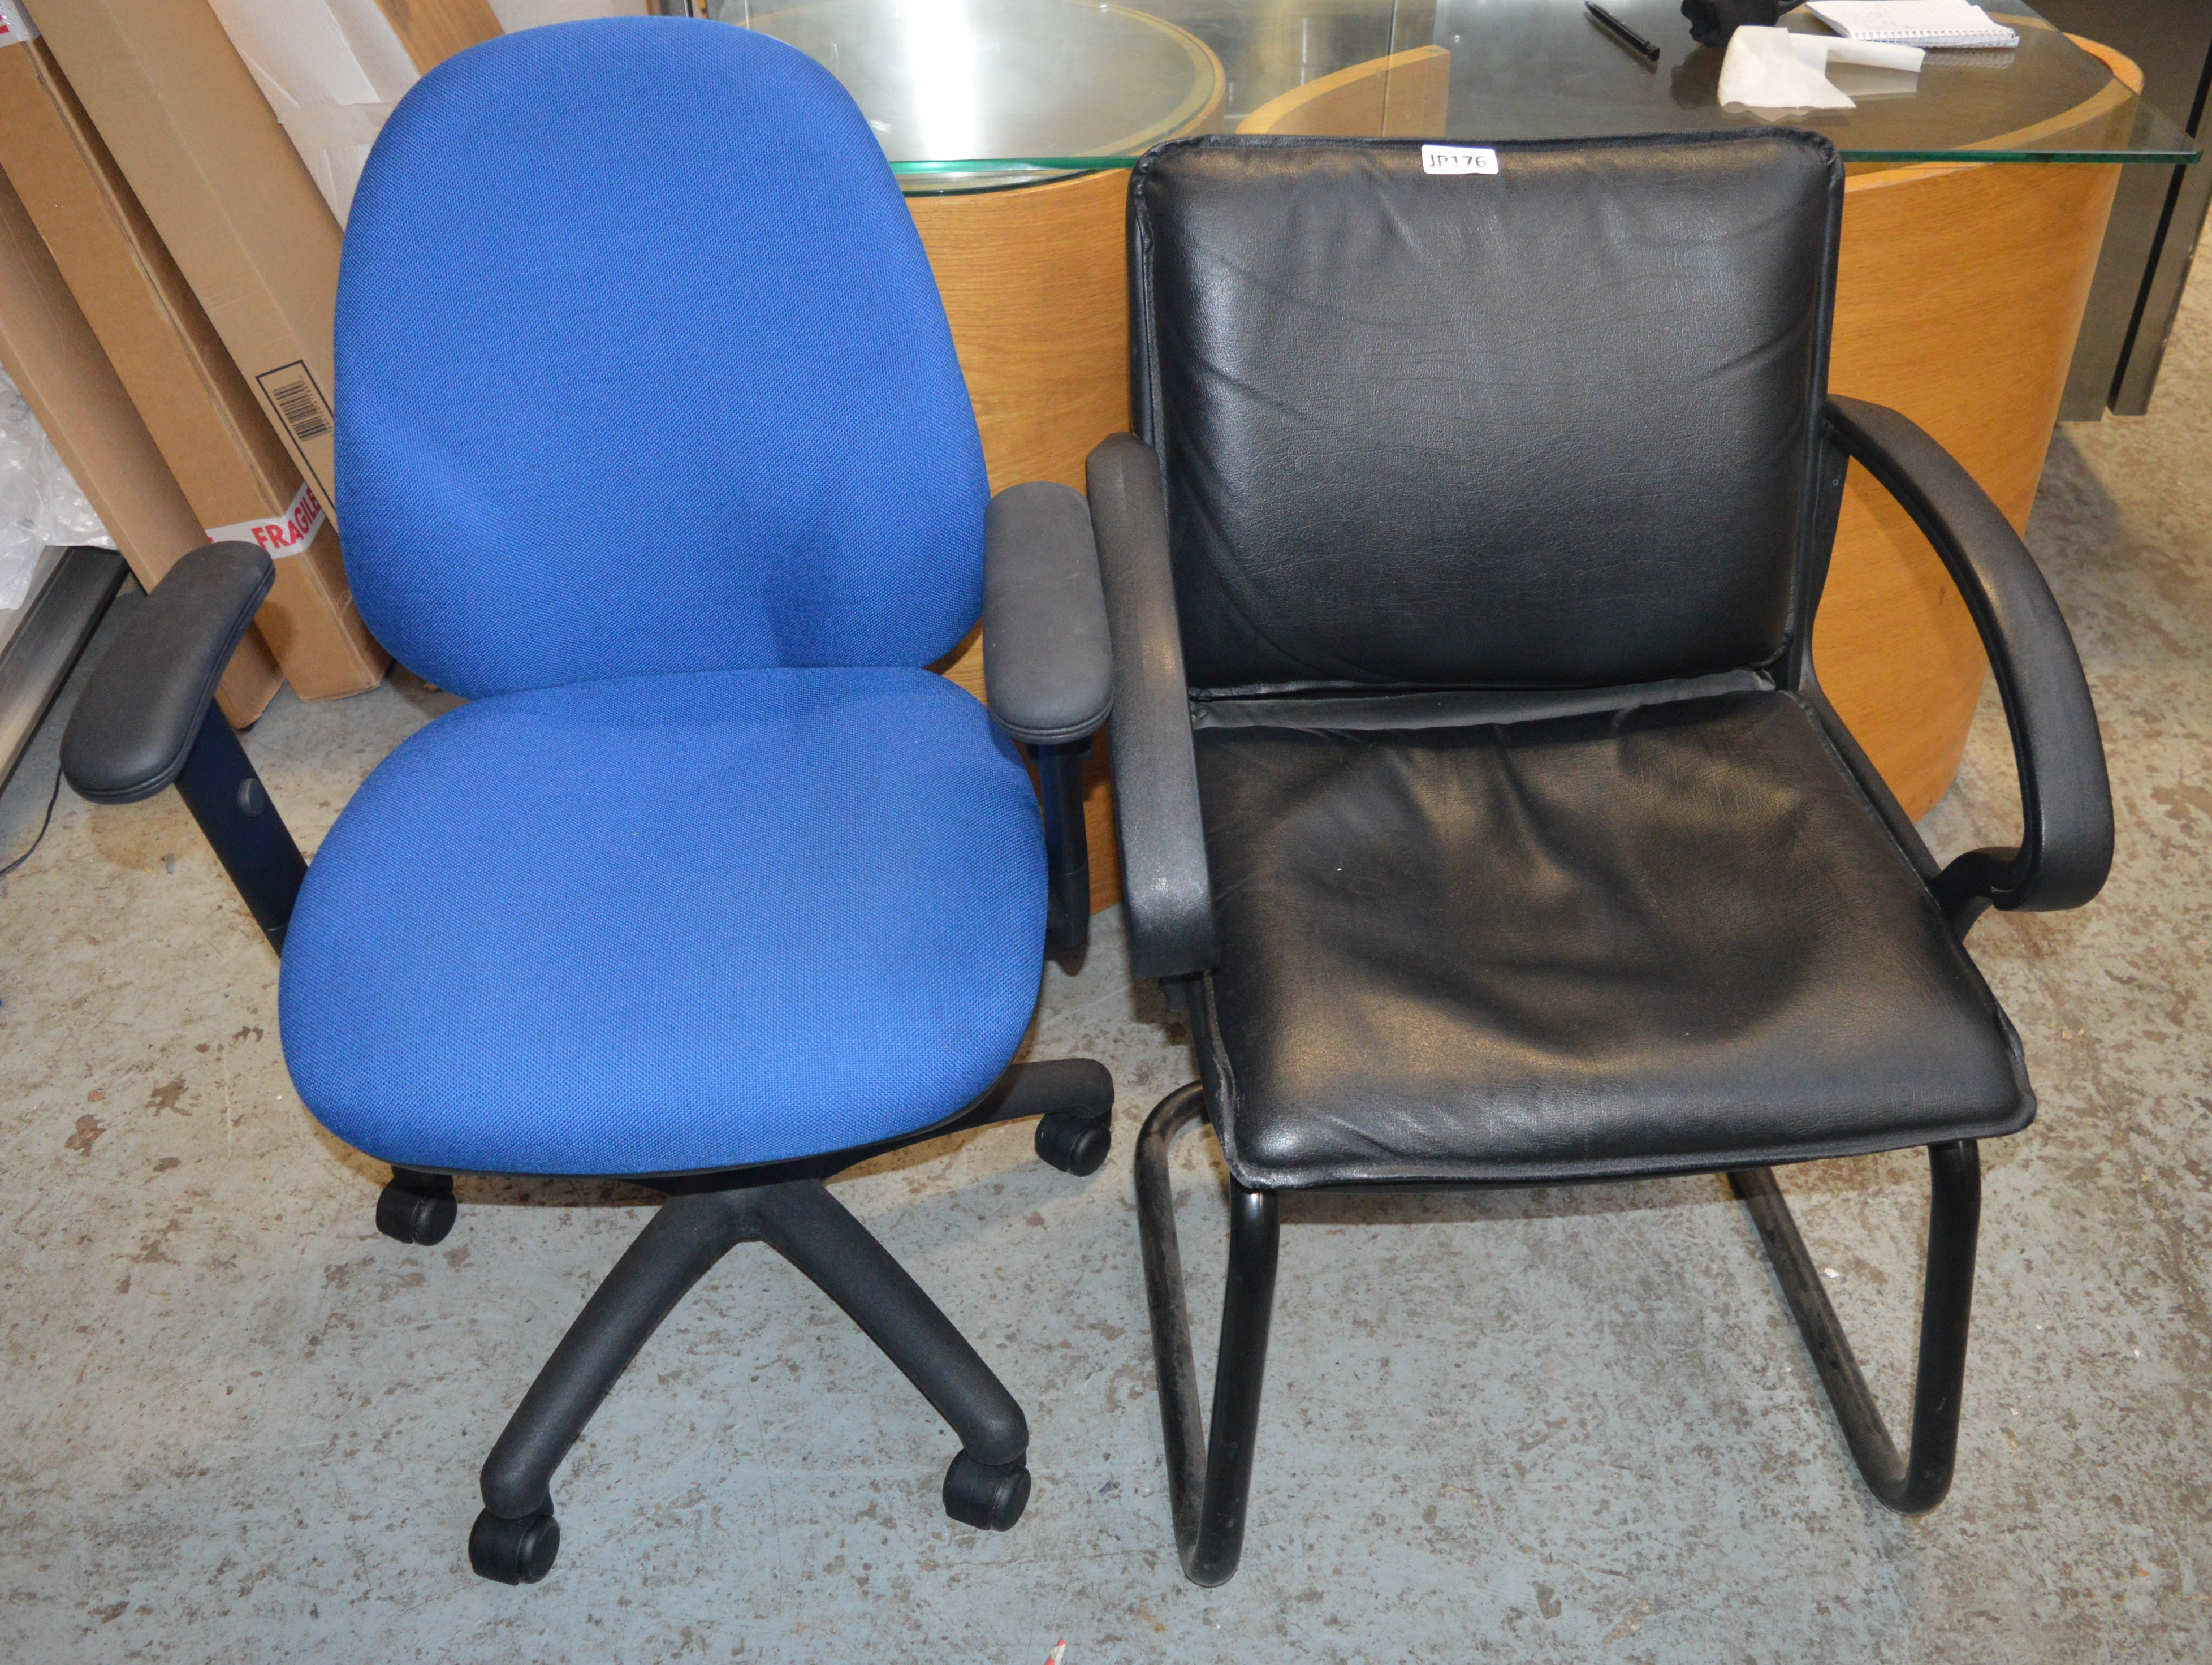 2 x Various Black Office Chairs *£1 Start - No Reserve* CL011 - Ref JP176